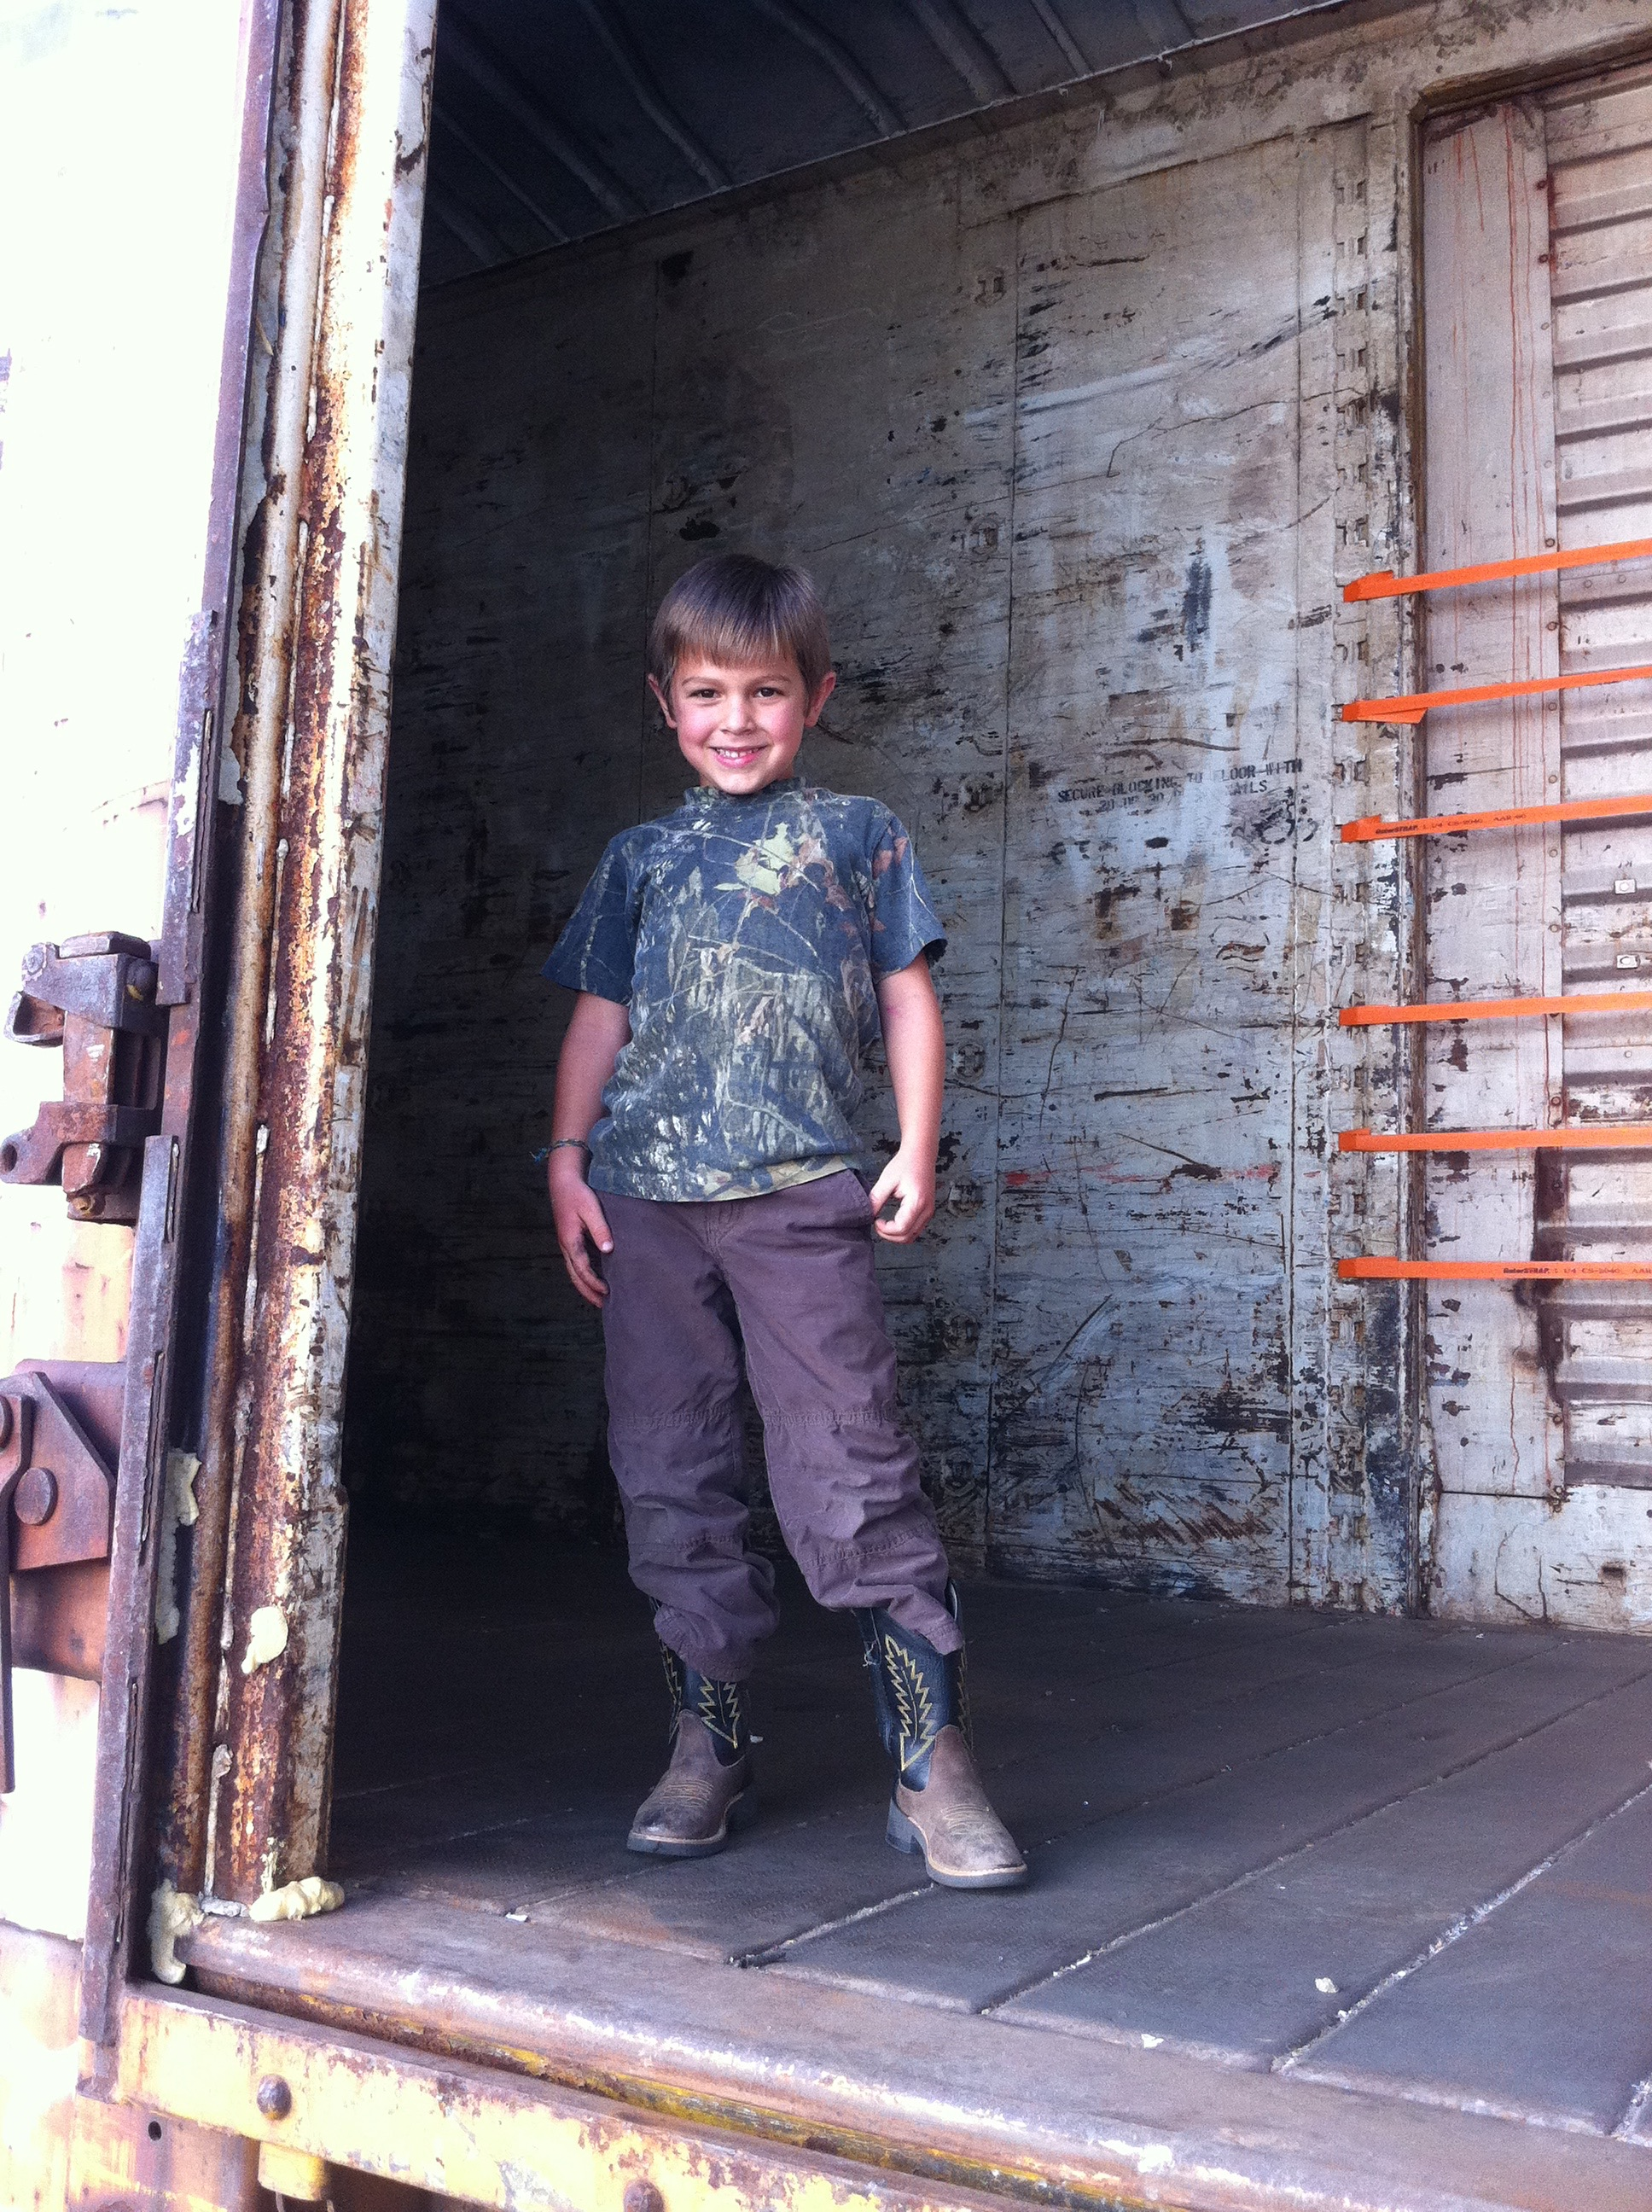 my son in an empty train car that is waiting to be loaded with cotton seed